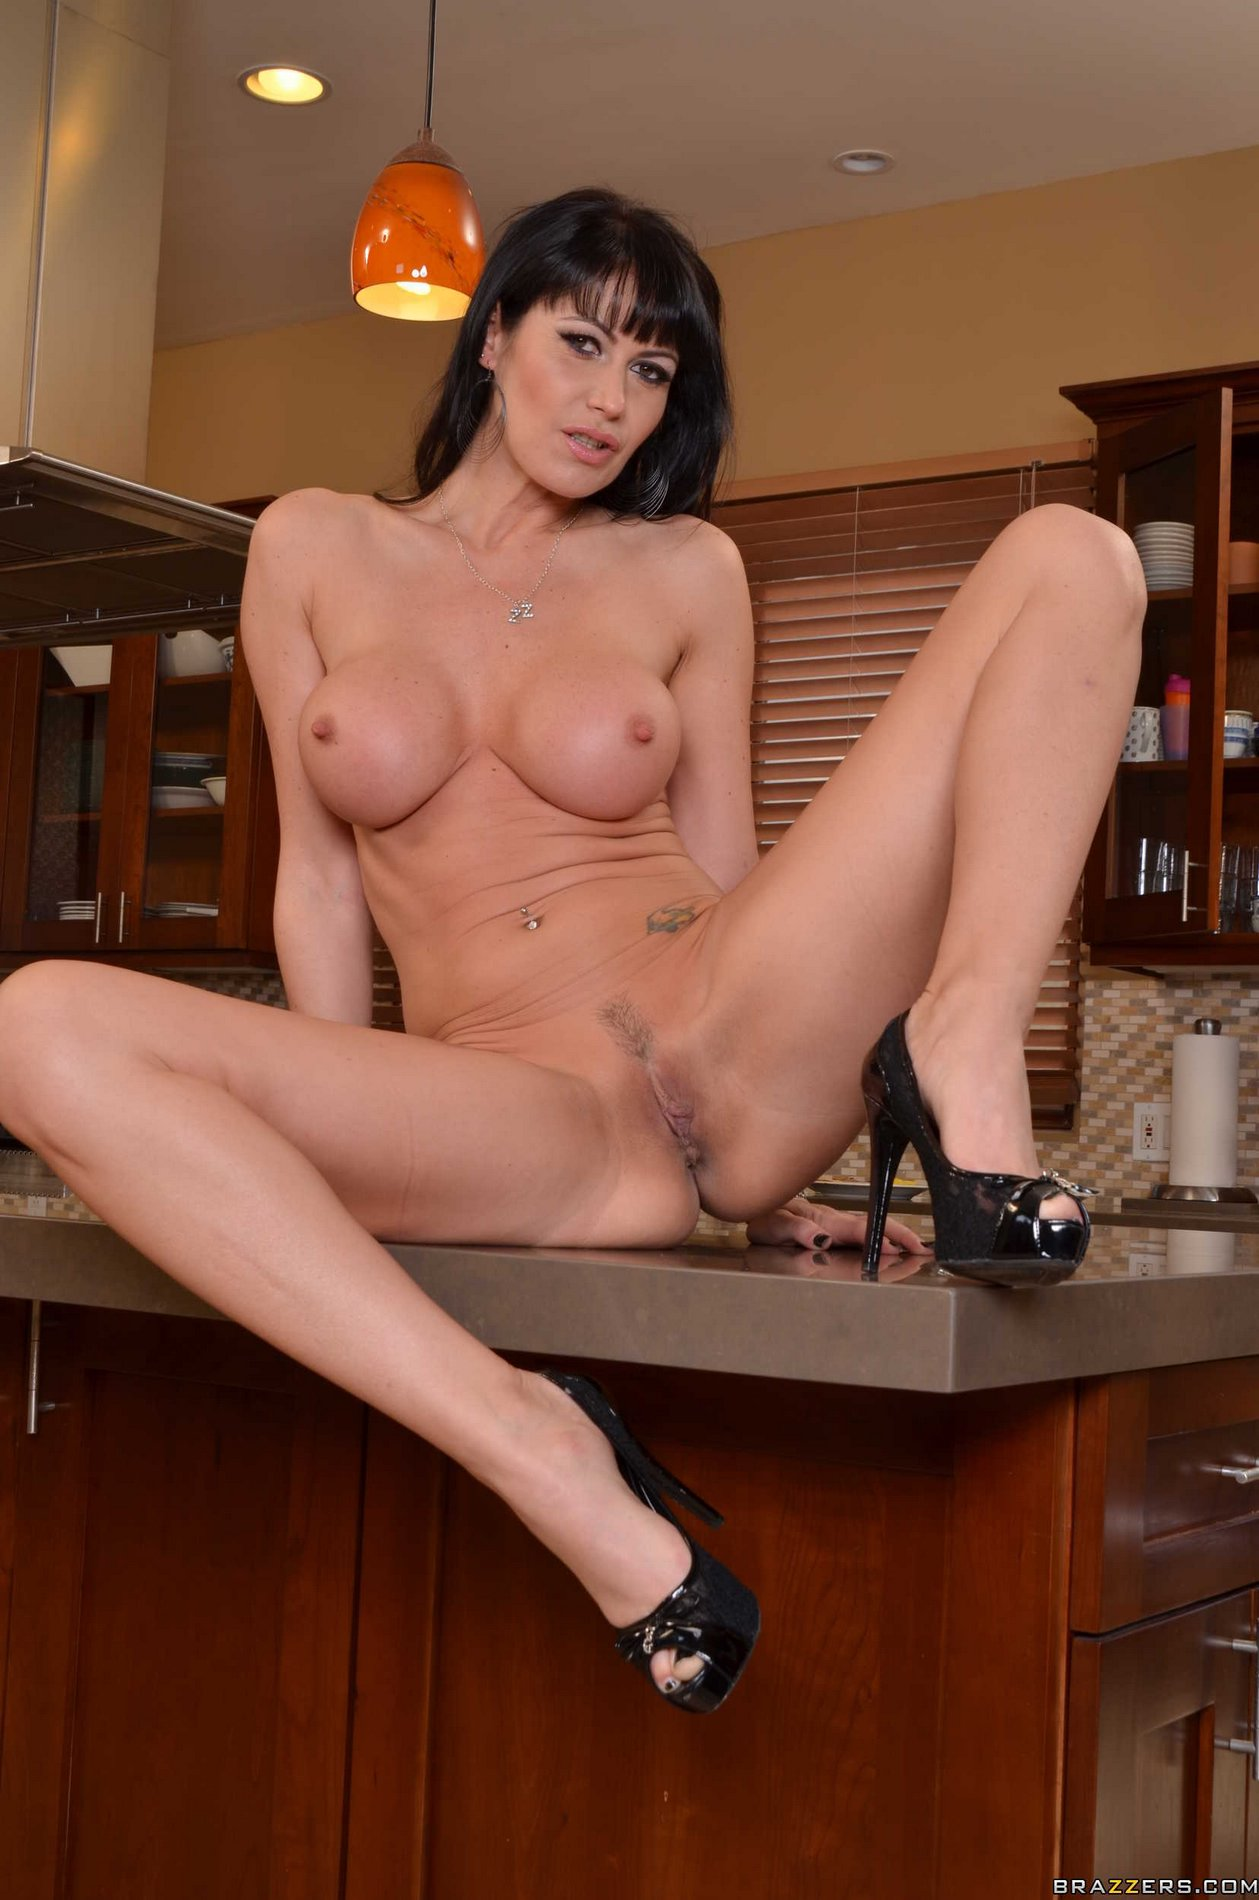 Your place Porn star kitchen scene simply